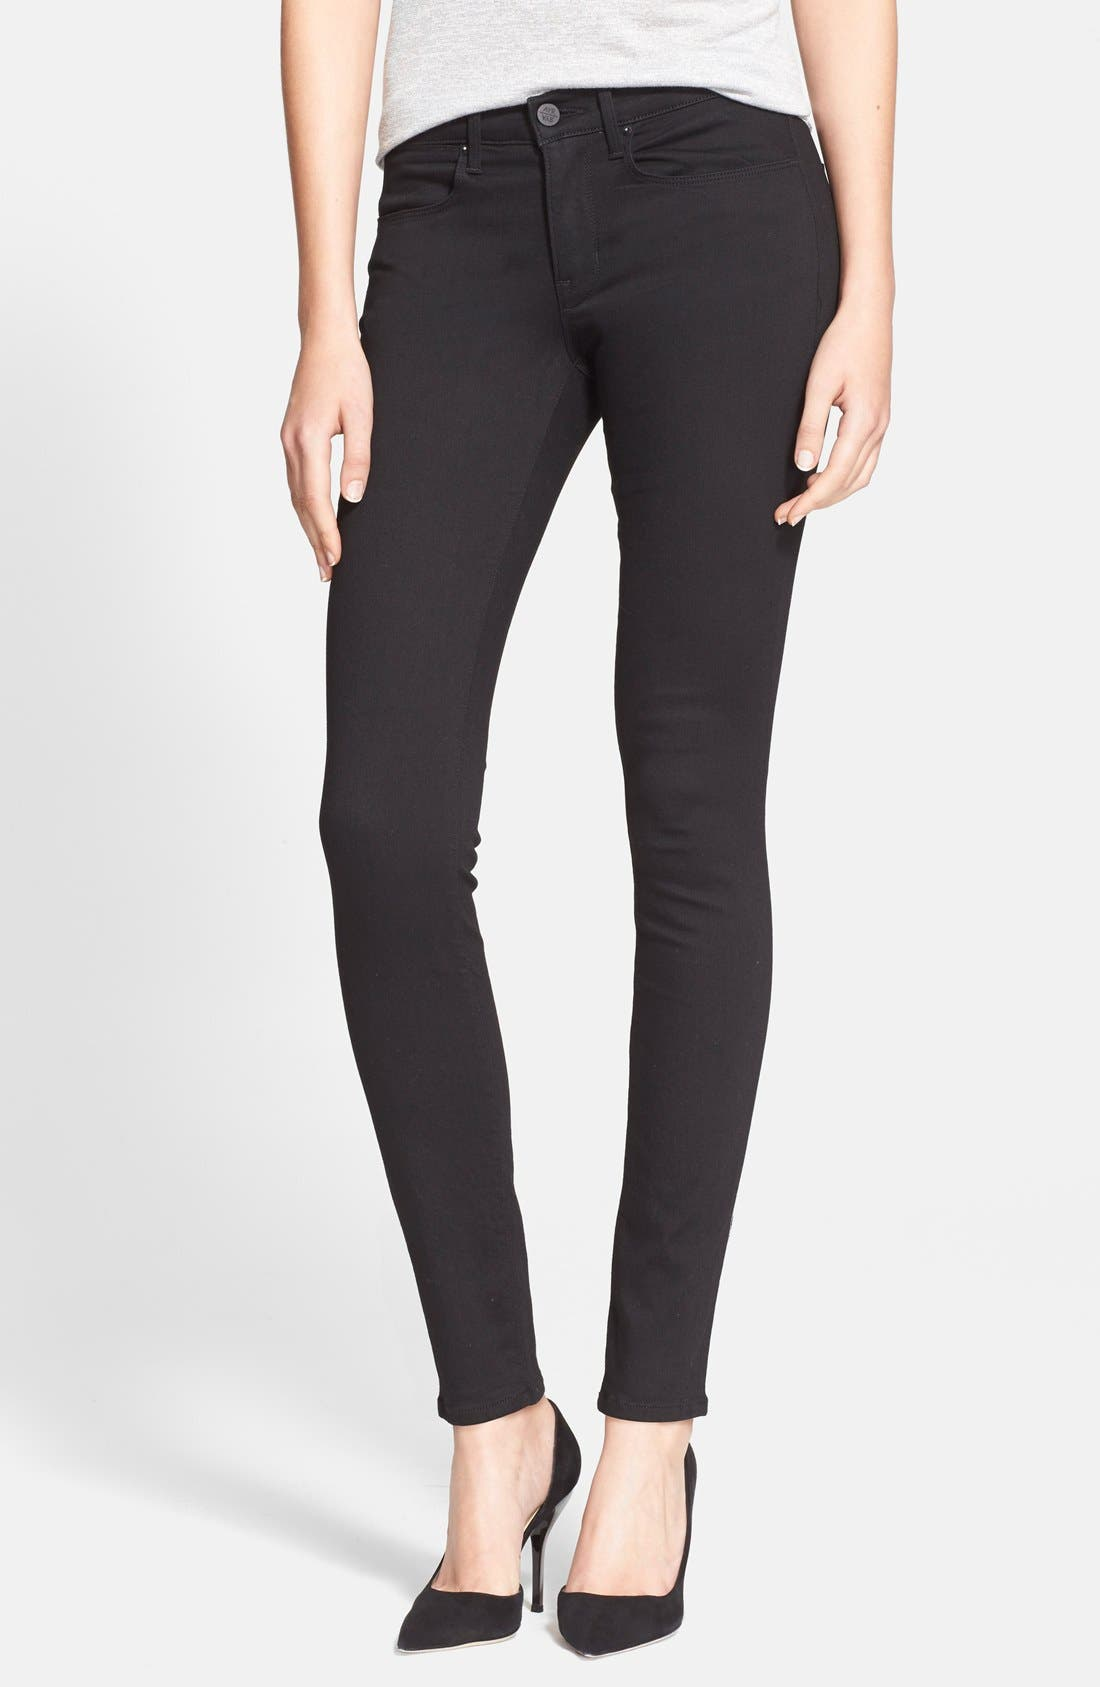 Alternate Image 1 Selected - AYR 'The Skinny' Skinny Jeans (Jet Black)